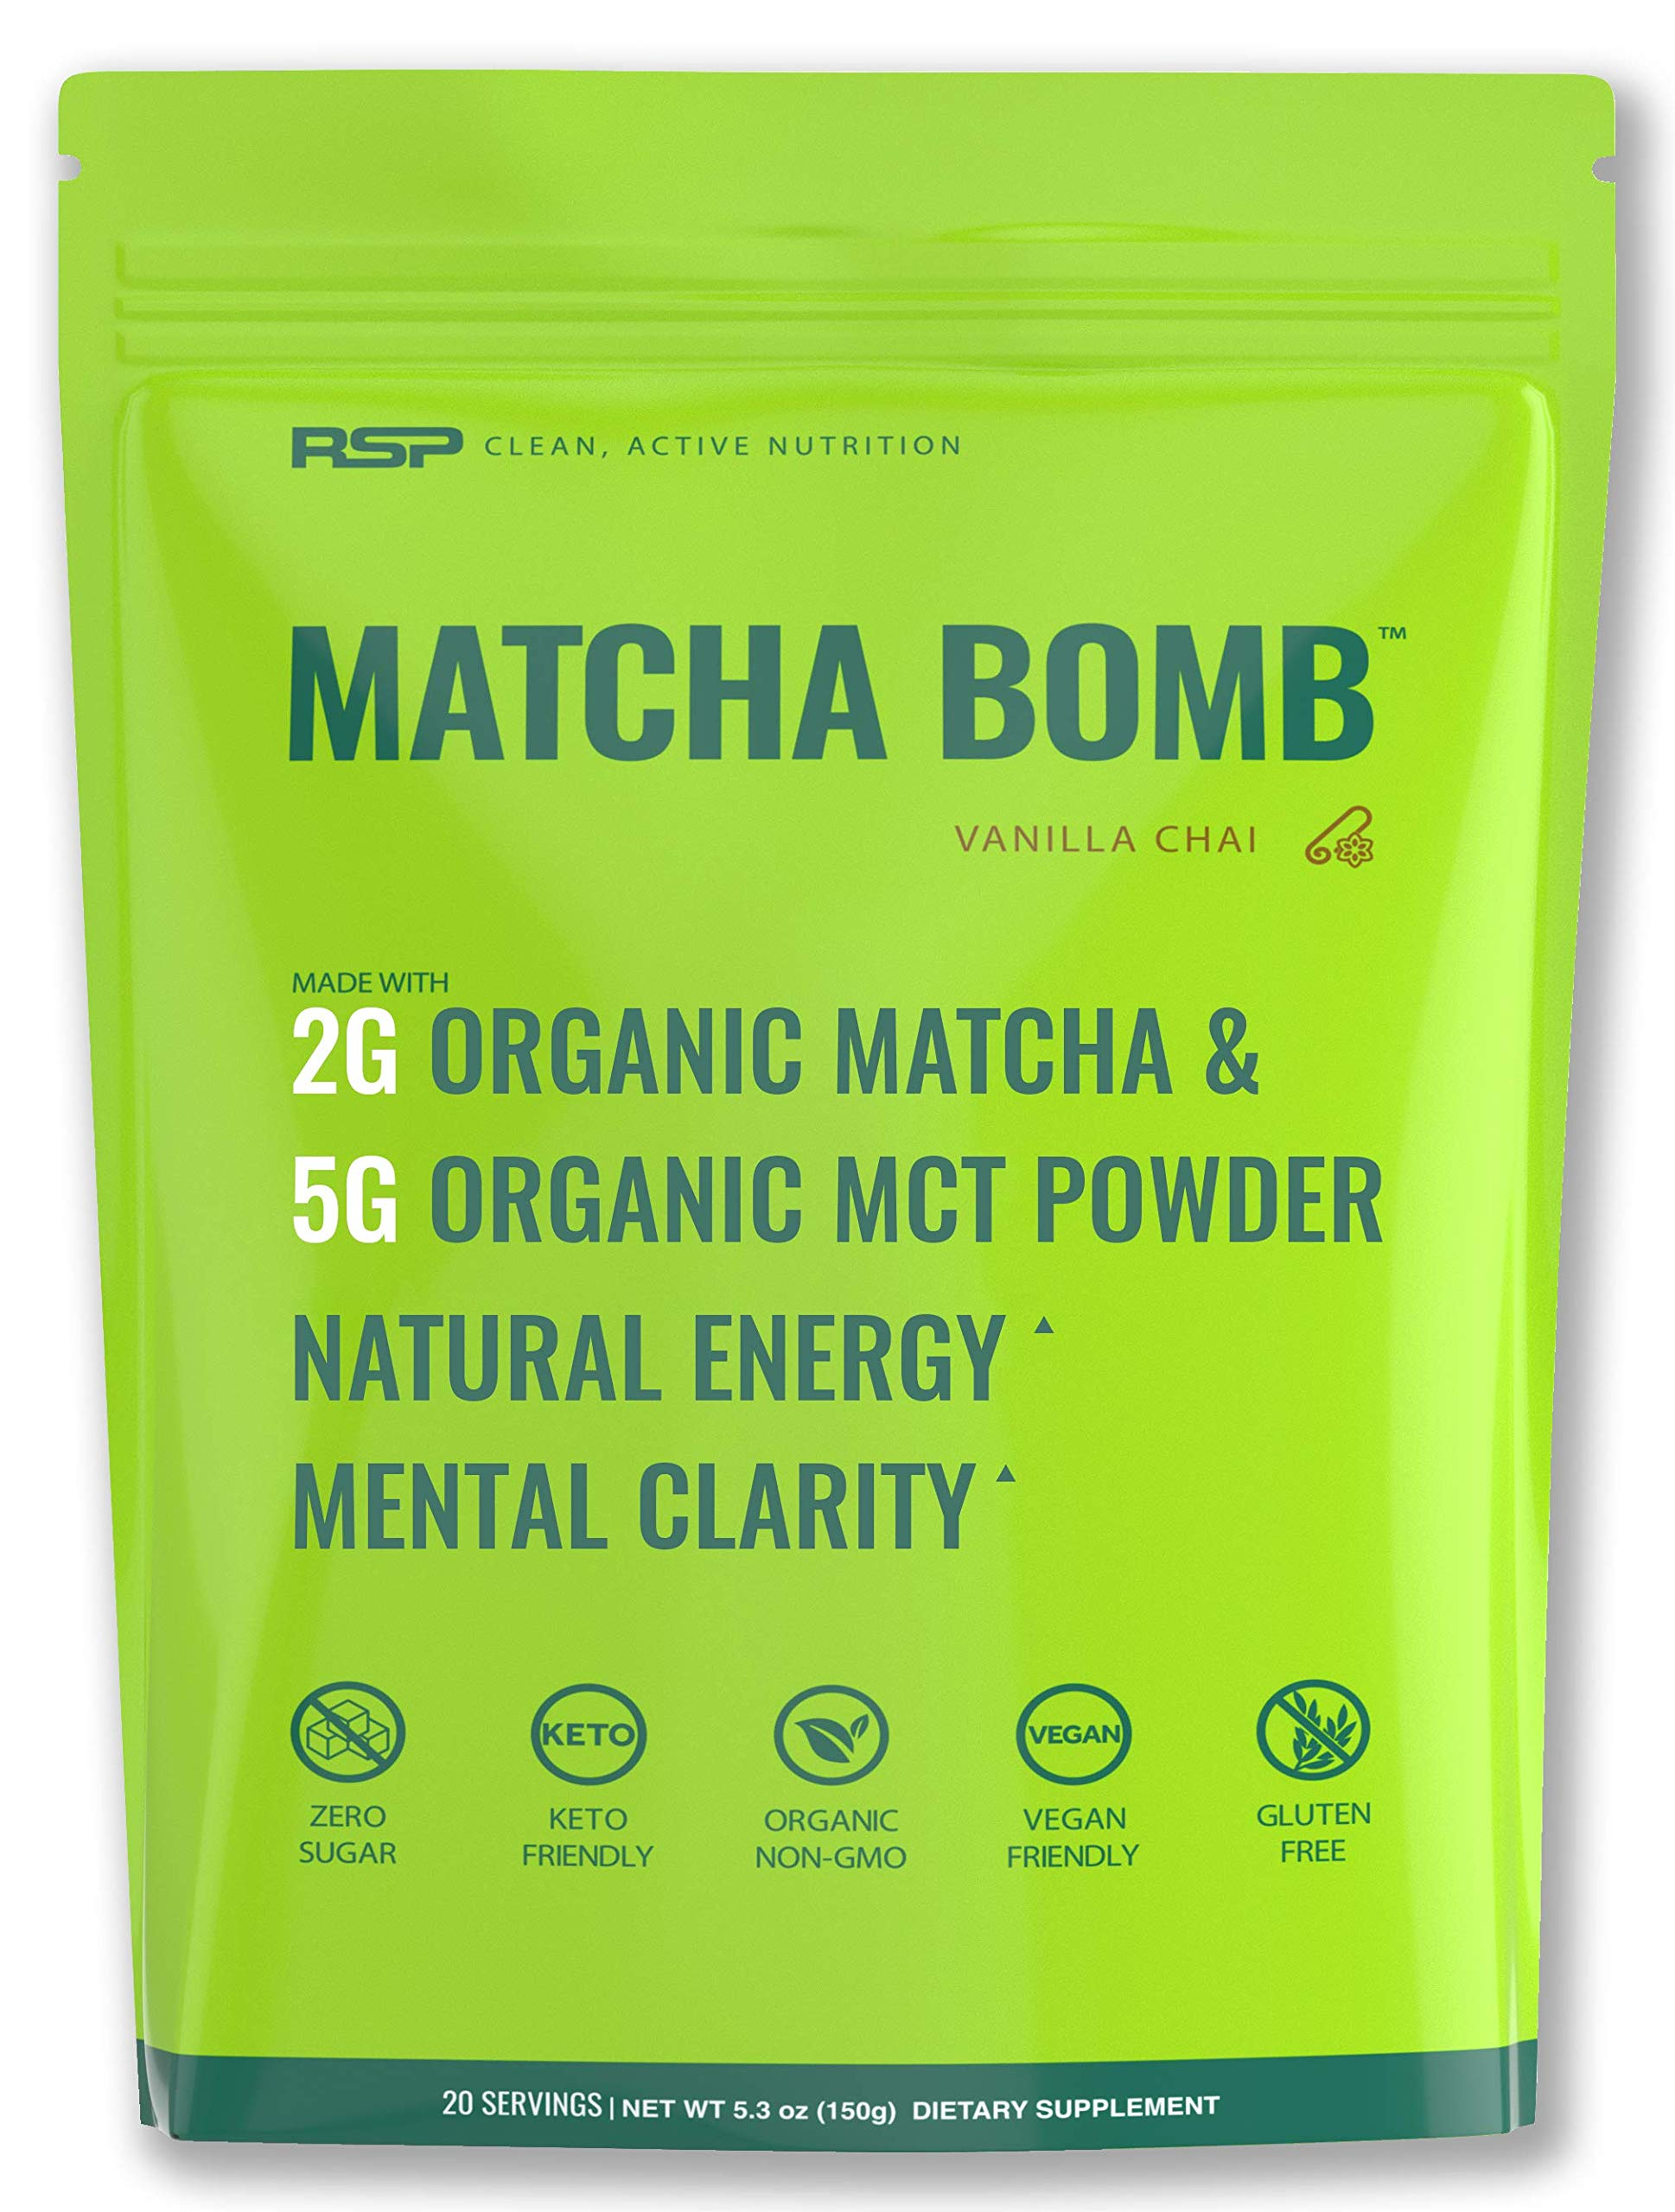 RSP Matcha Bomb (150g) - Organic Matcha Green Tea Powder with MCTs for Natural Energy and Clarity, Non-GMO, Keto Friendly, Vegan Friendly, Gluten Free, Vanilla Chai (20 Servings) by RSP Nutrition